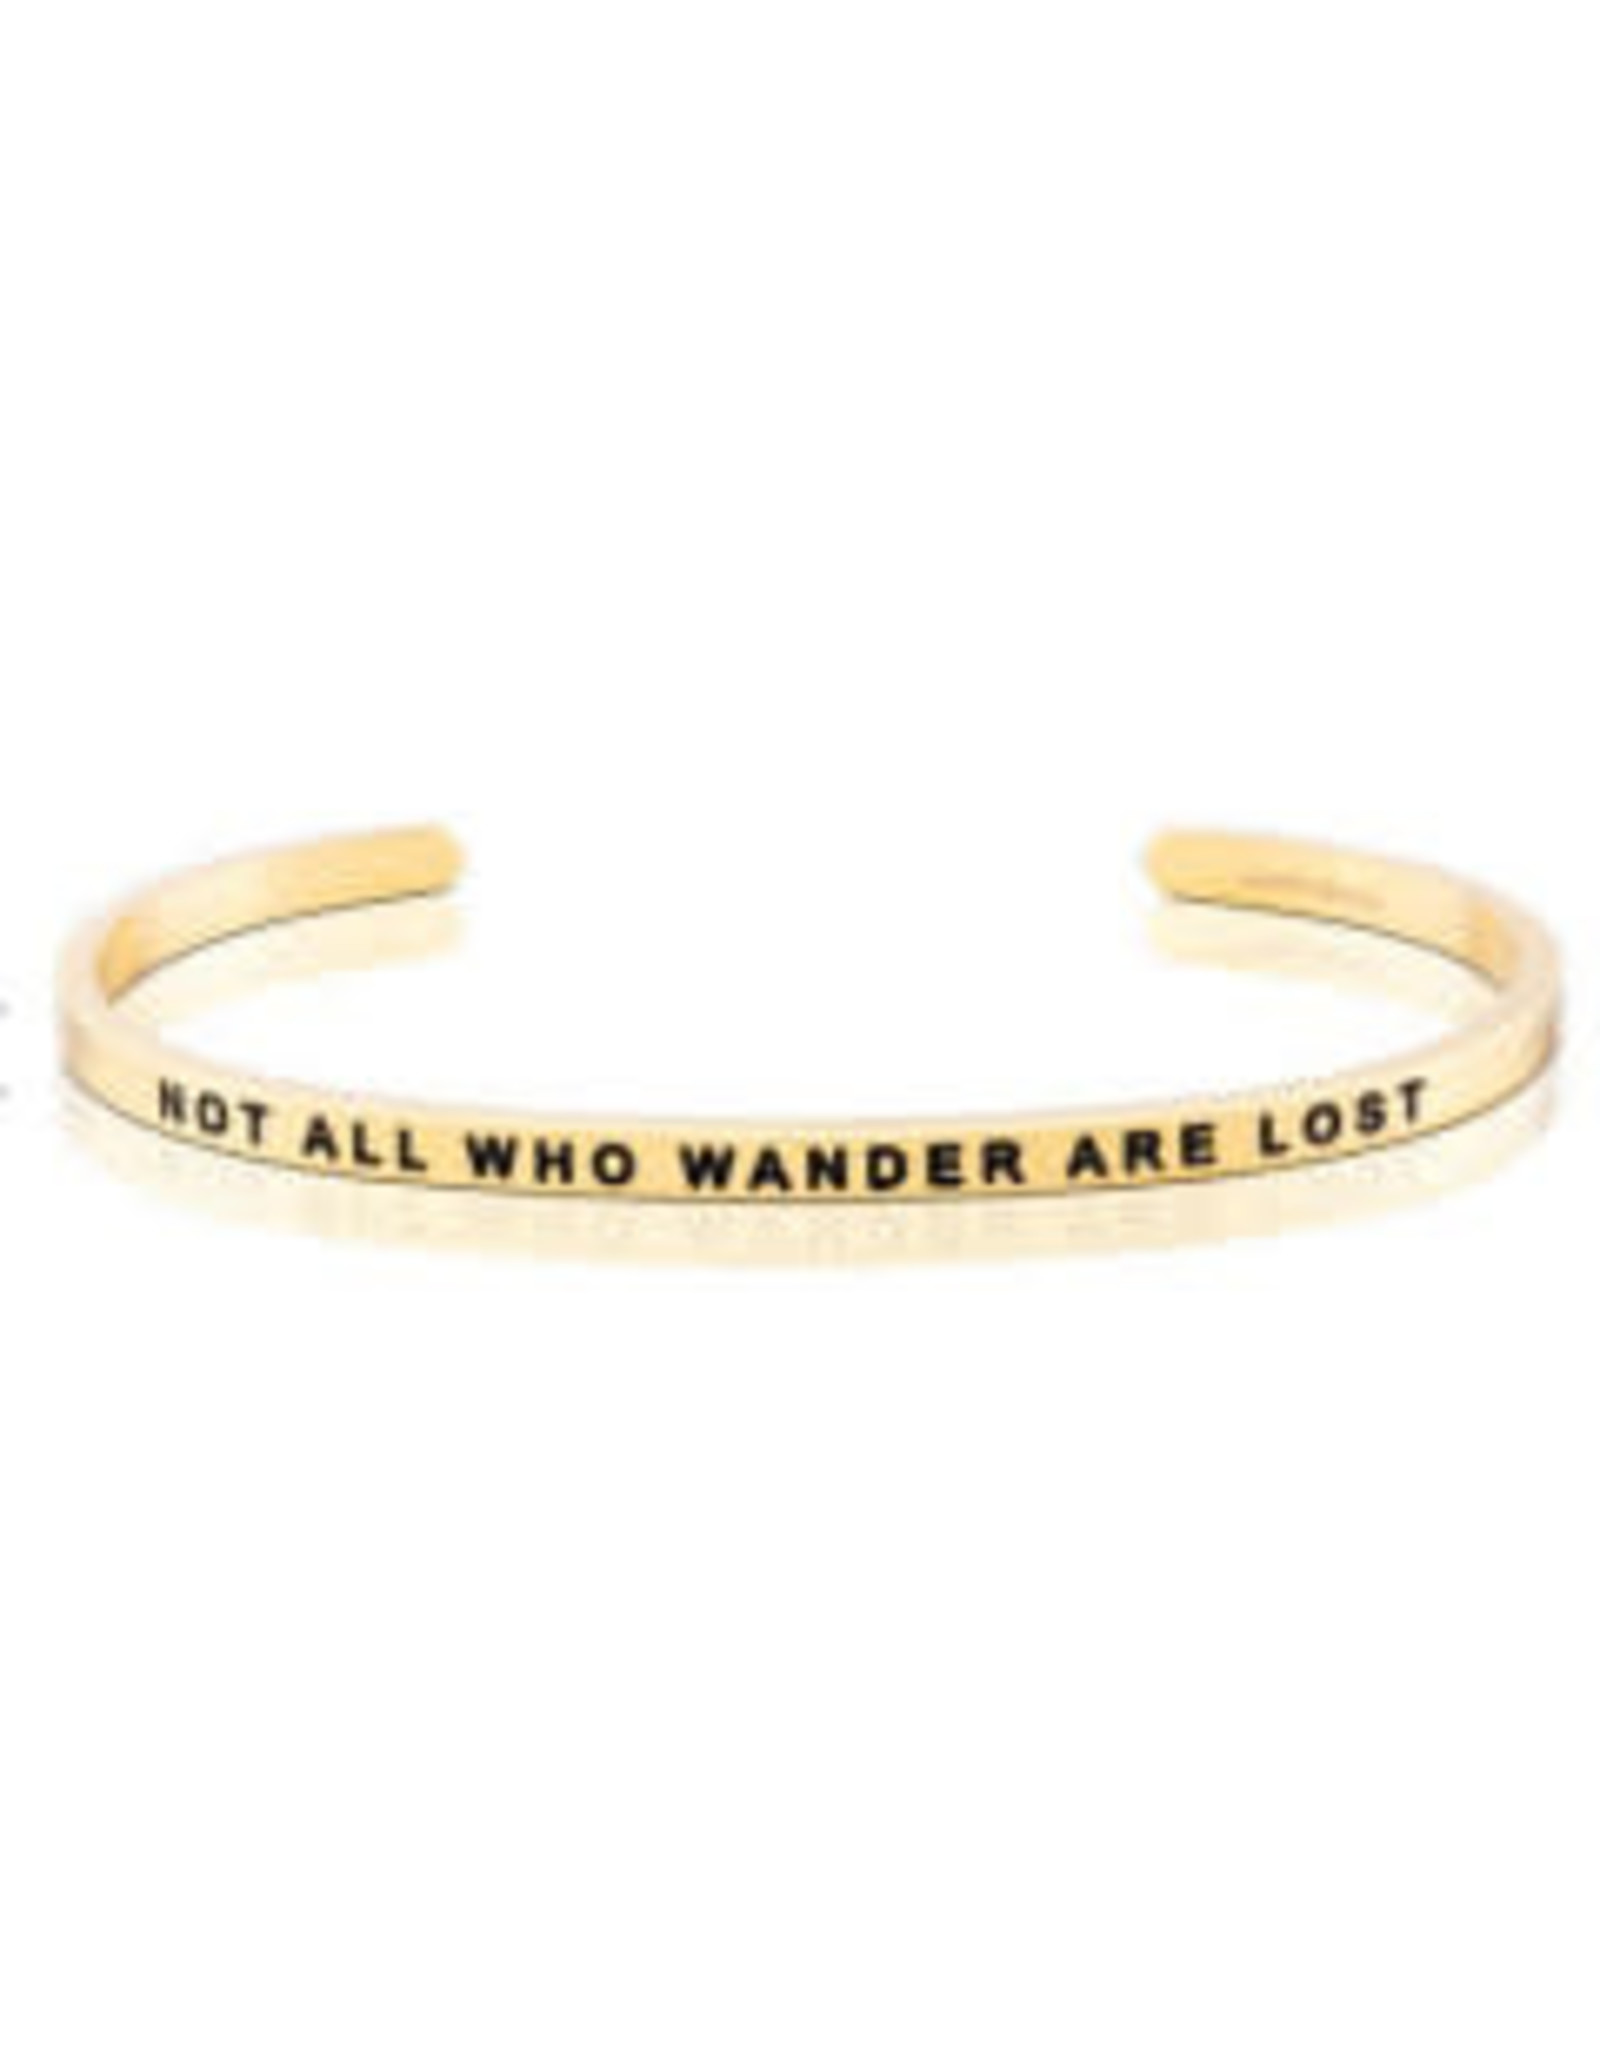 MantraBand MantraBand Bracelet, Not All Who Wander Are Lost